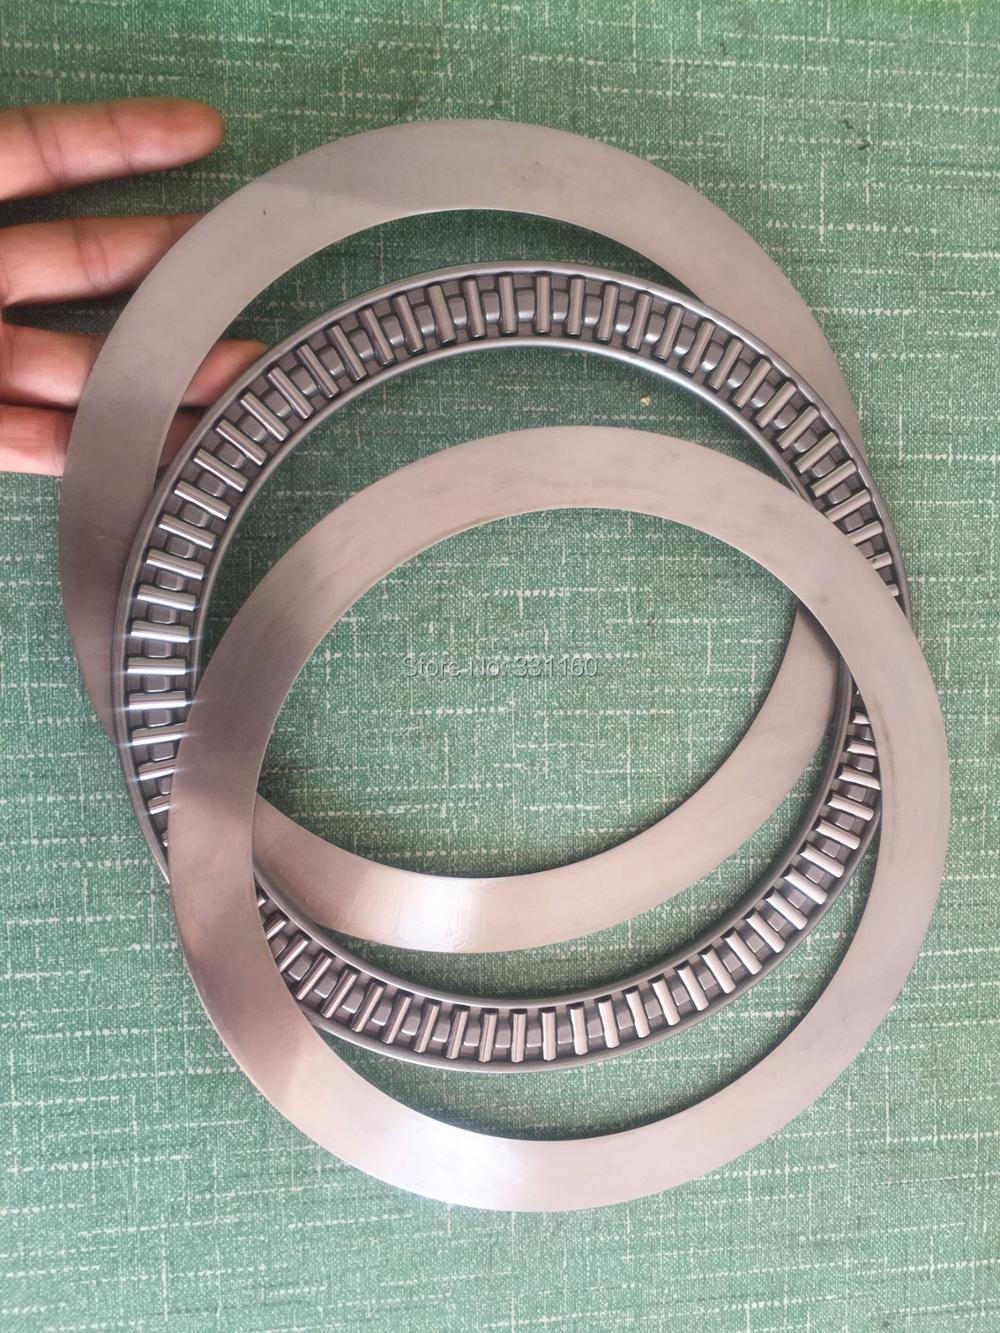 Thrust Needle Roller Bearing With Two Washers  AXK190235  SIZE:ID=190mm, OD= 235mm, Thickness =9MM .190*235*9 MM